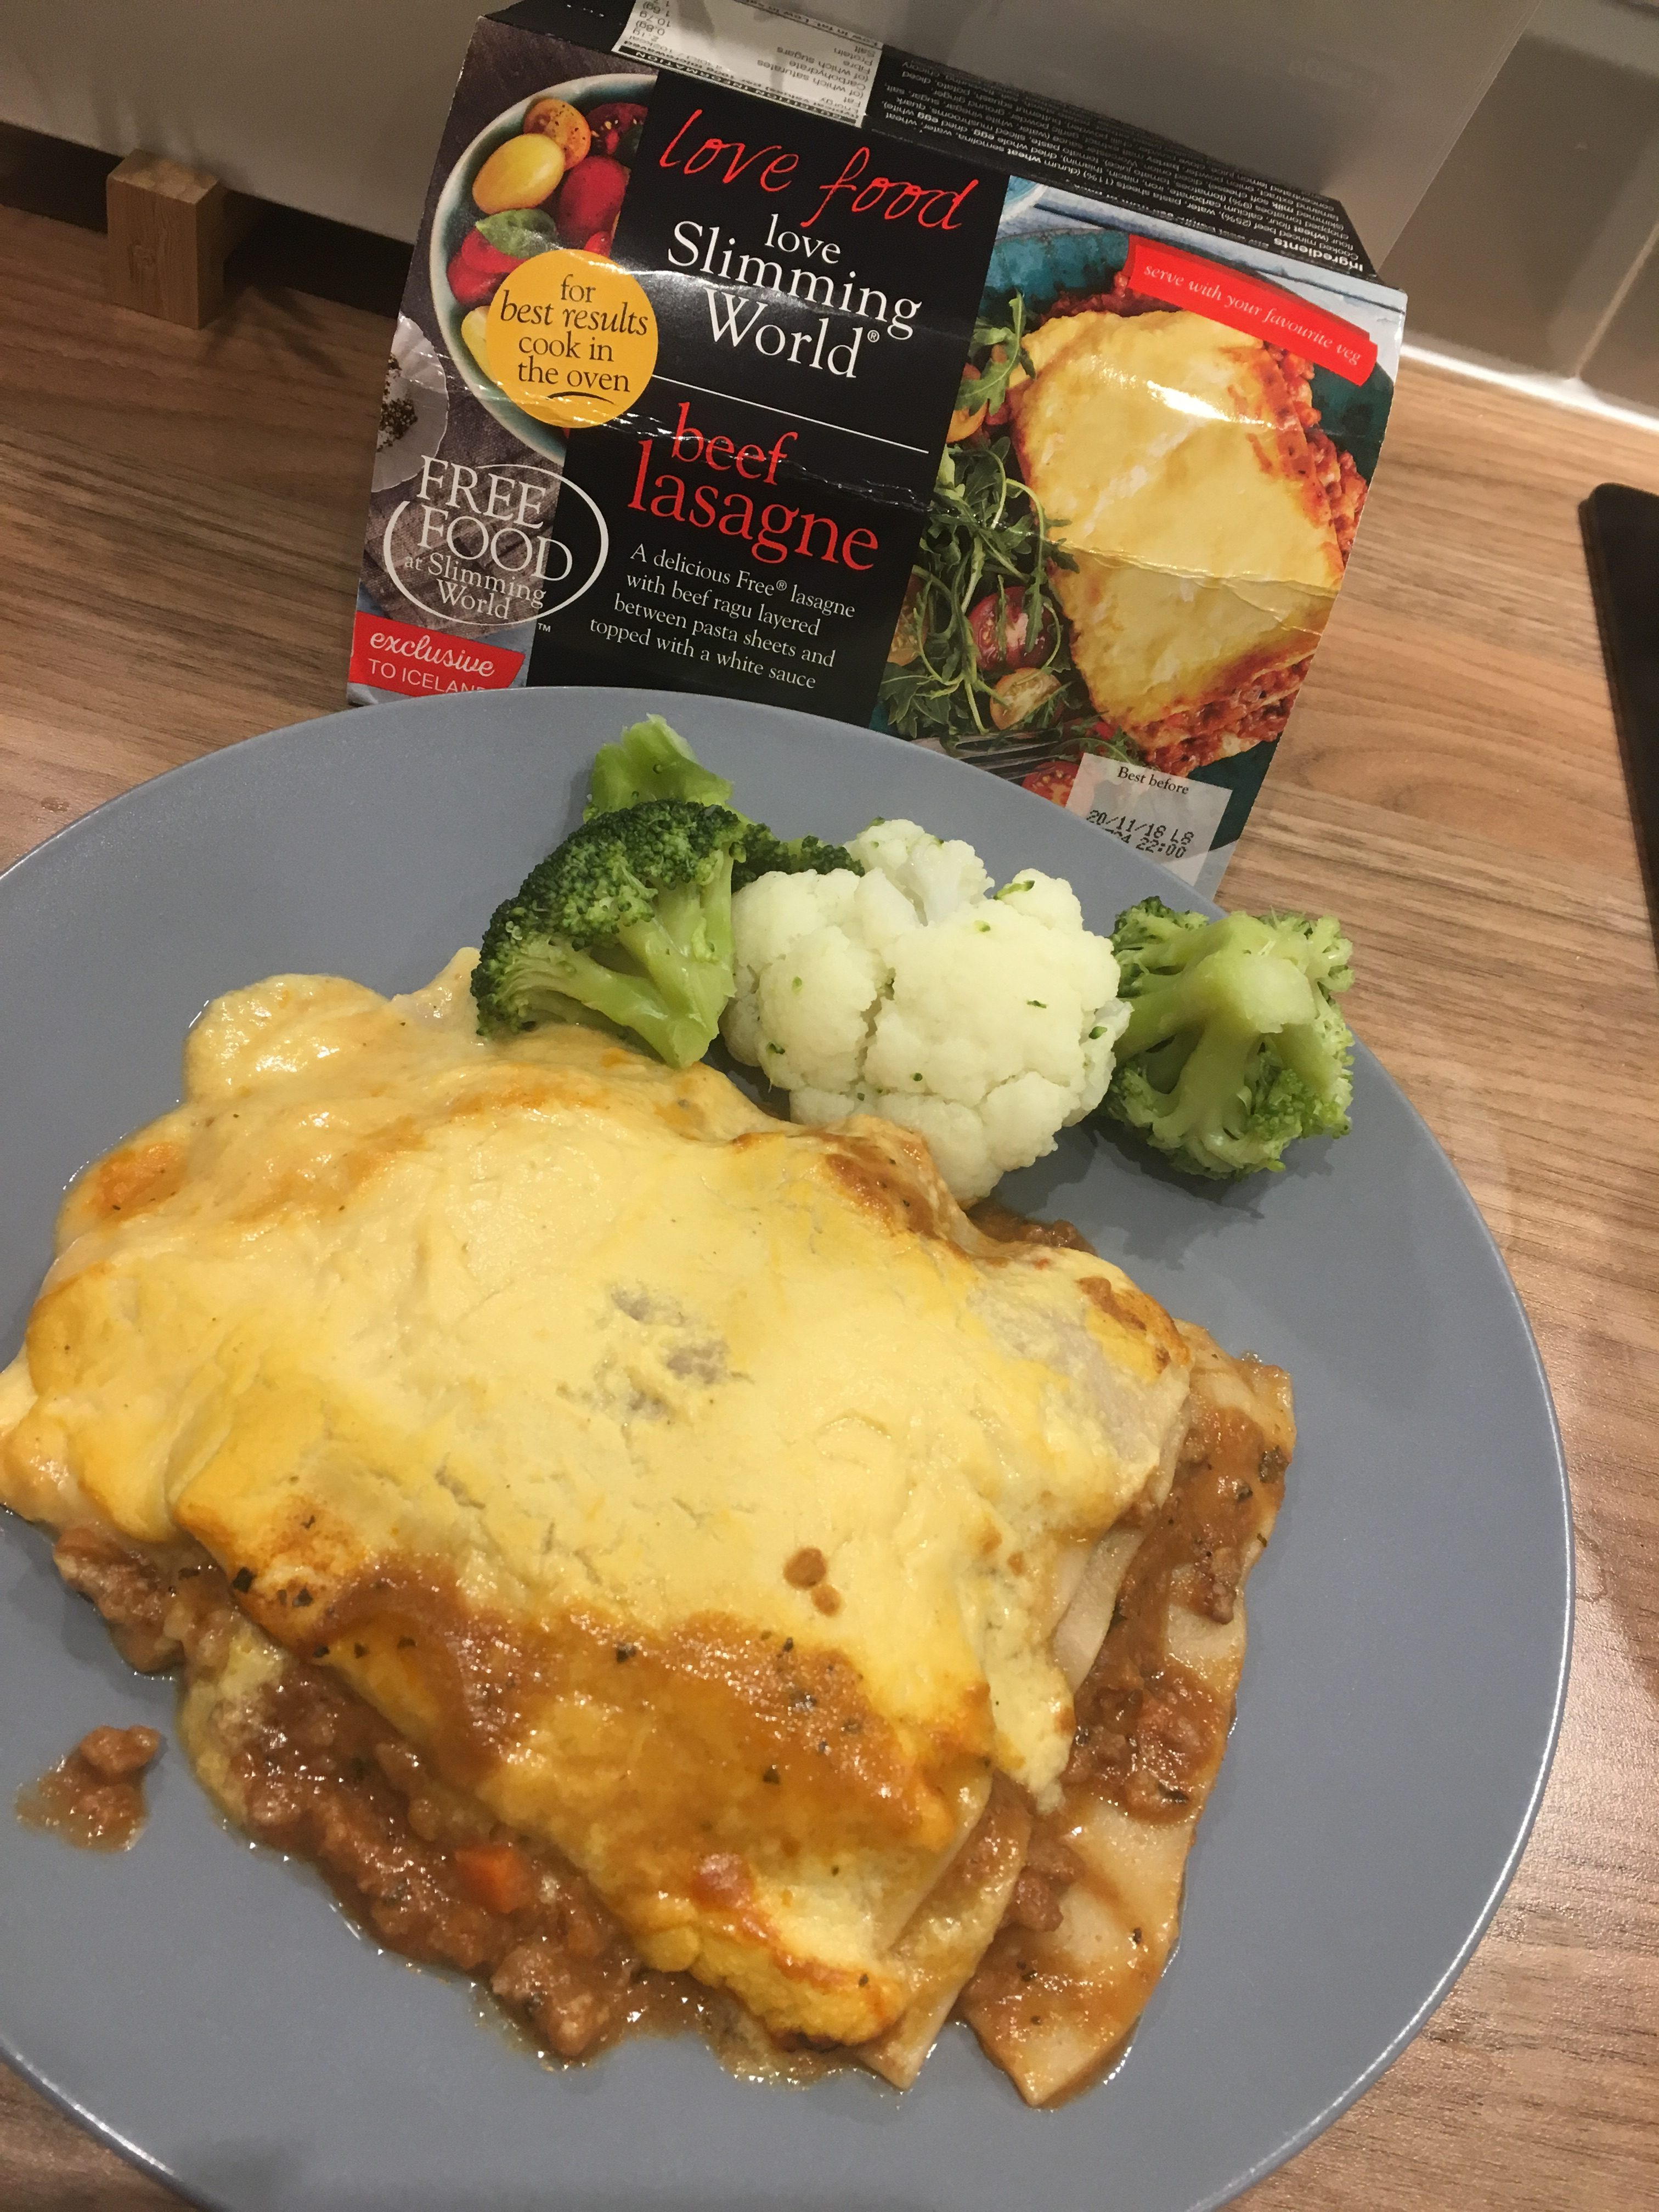 Iceland S Slimming World Beef Lasagne My Review Fatgirlskinny